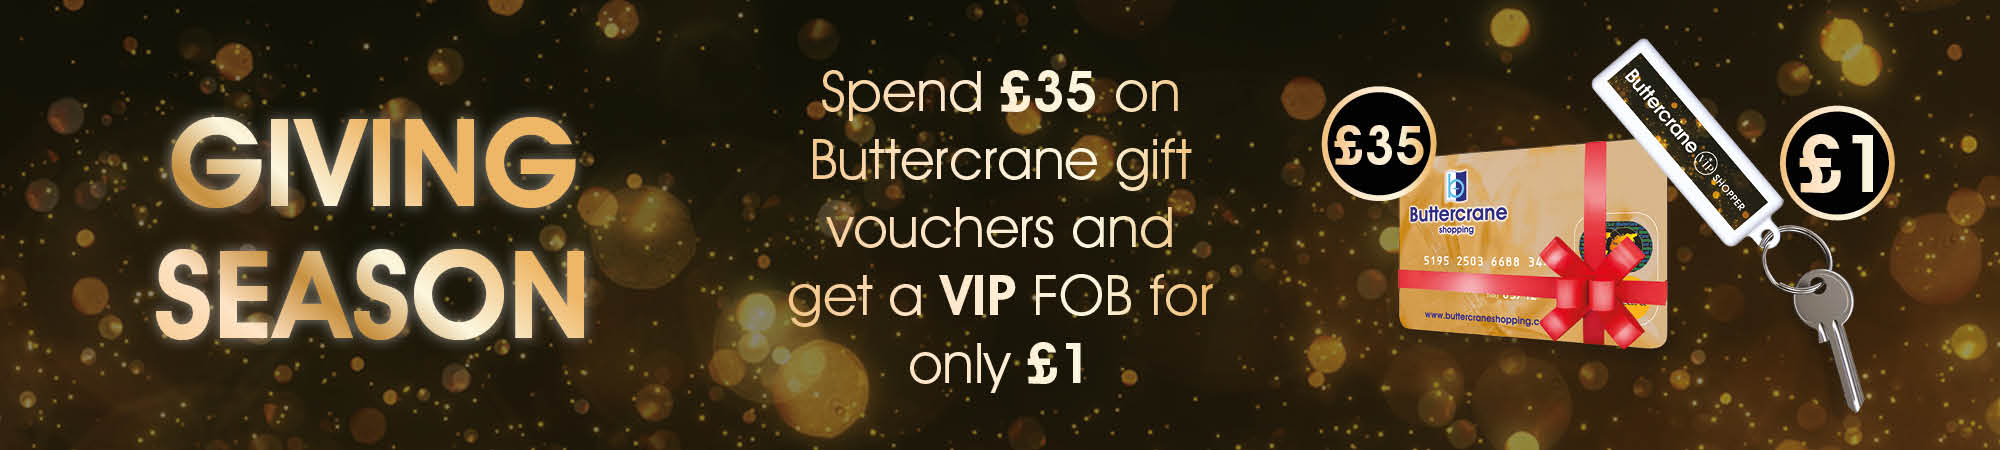 VIP Fob offer